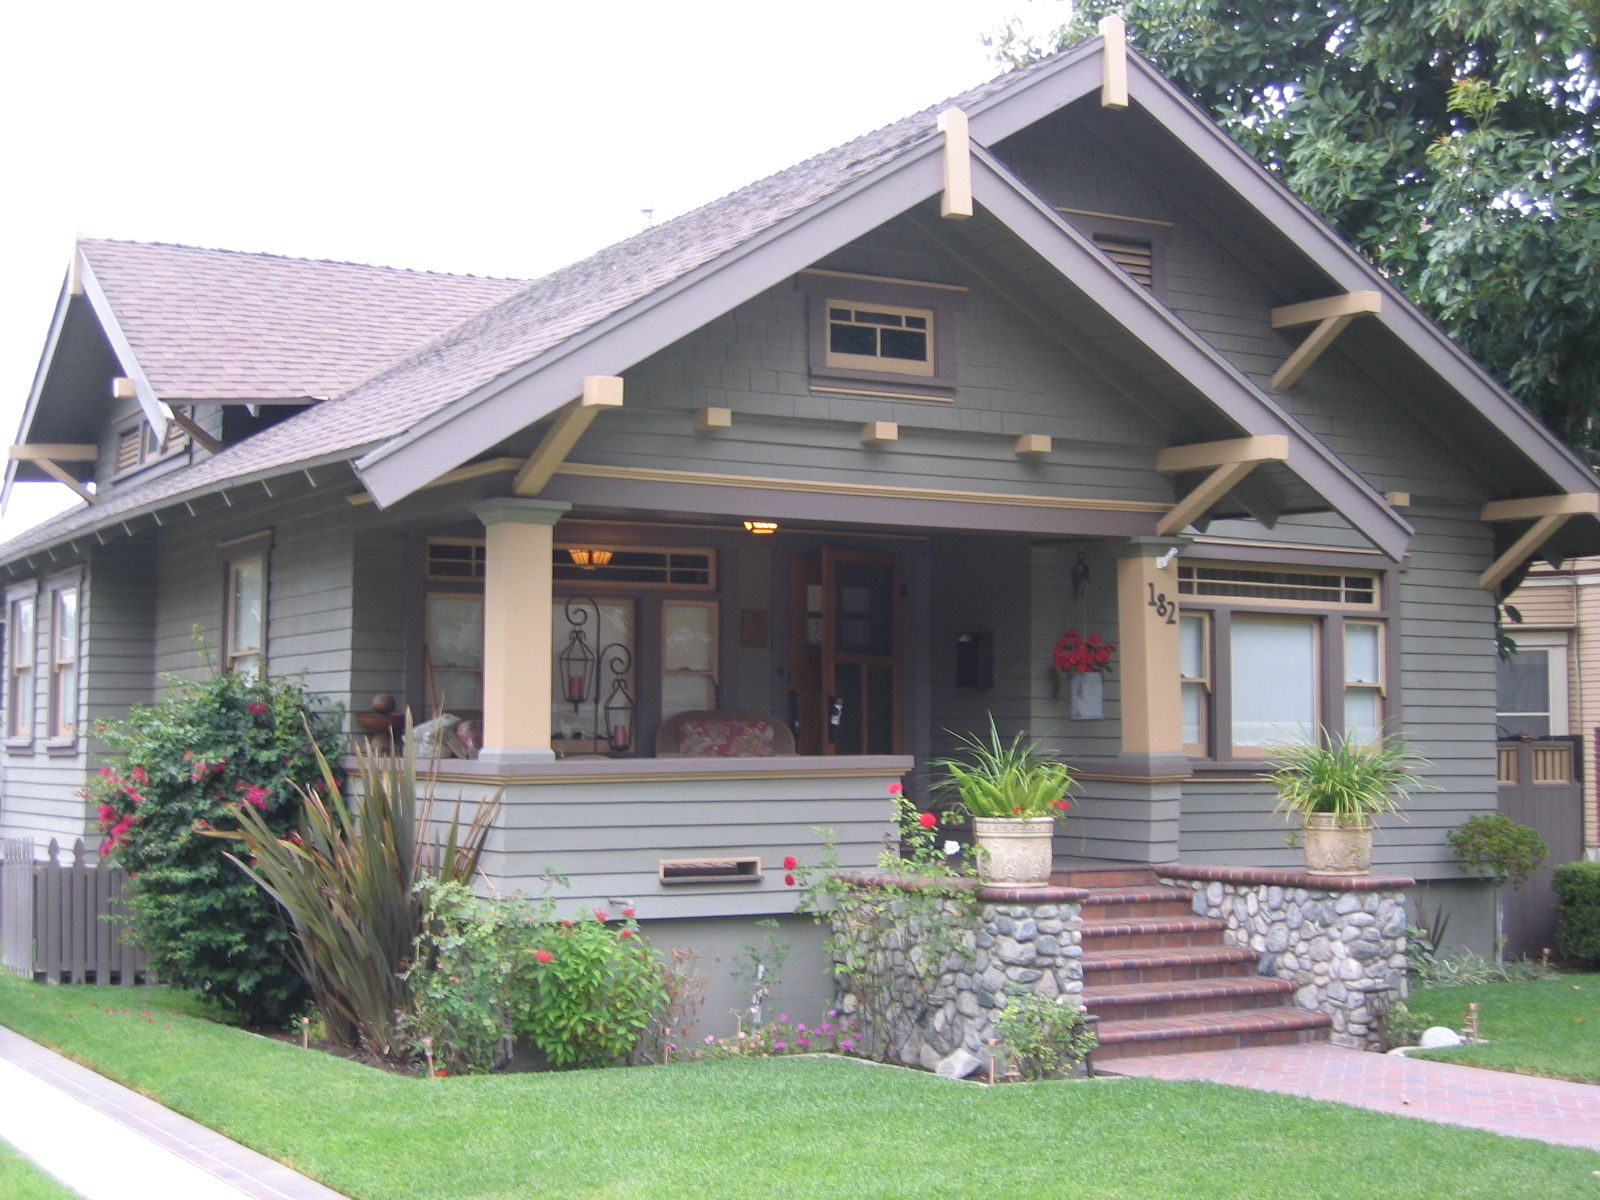 Craftsman house pictures craftsman home style sight Craftsmen home